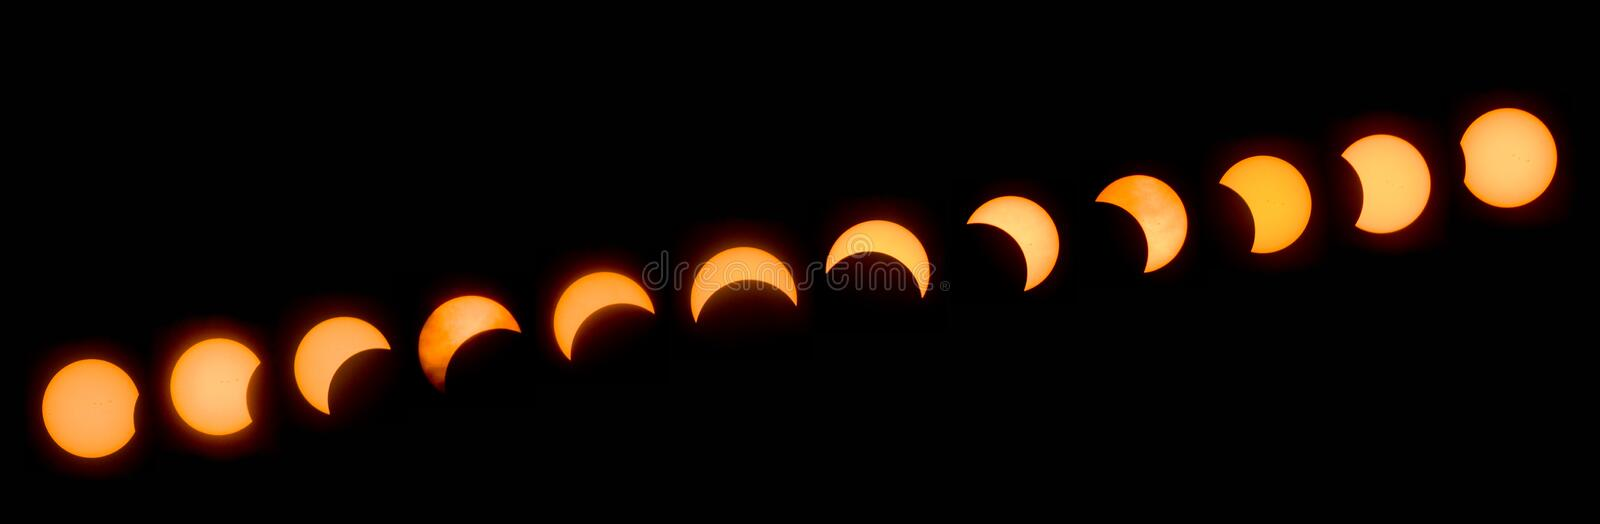 Great American Eclipse 2017 stock image